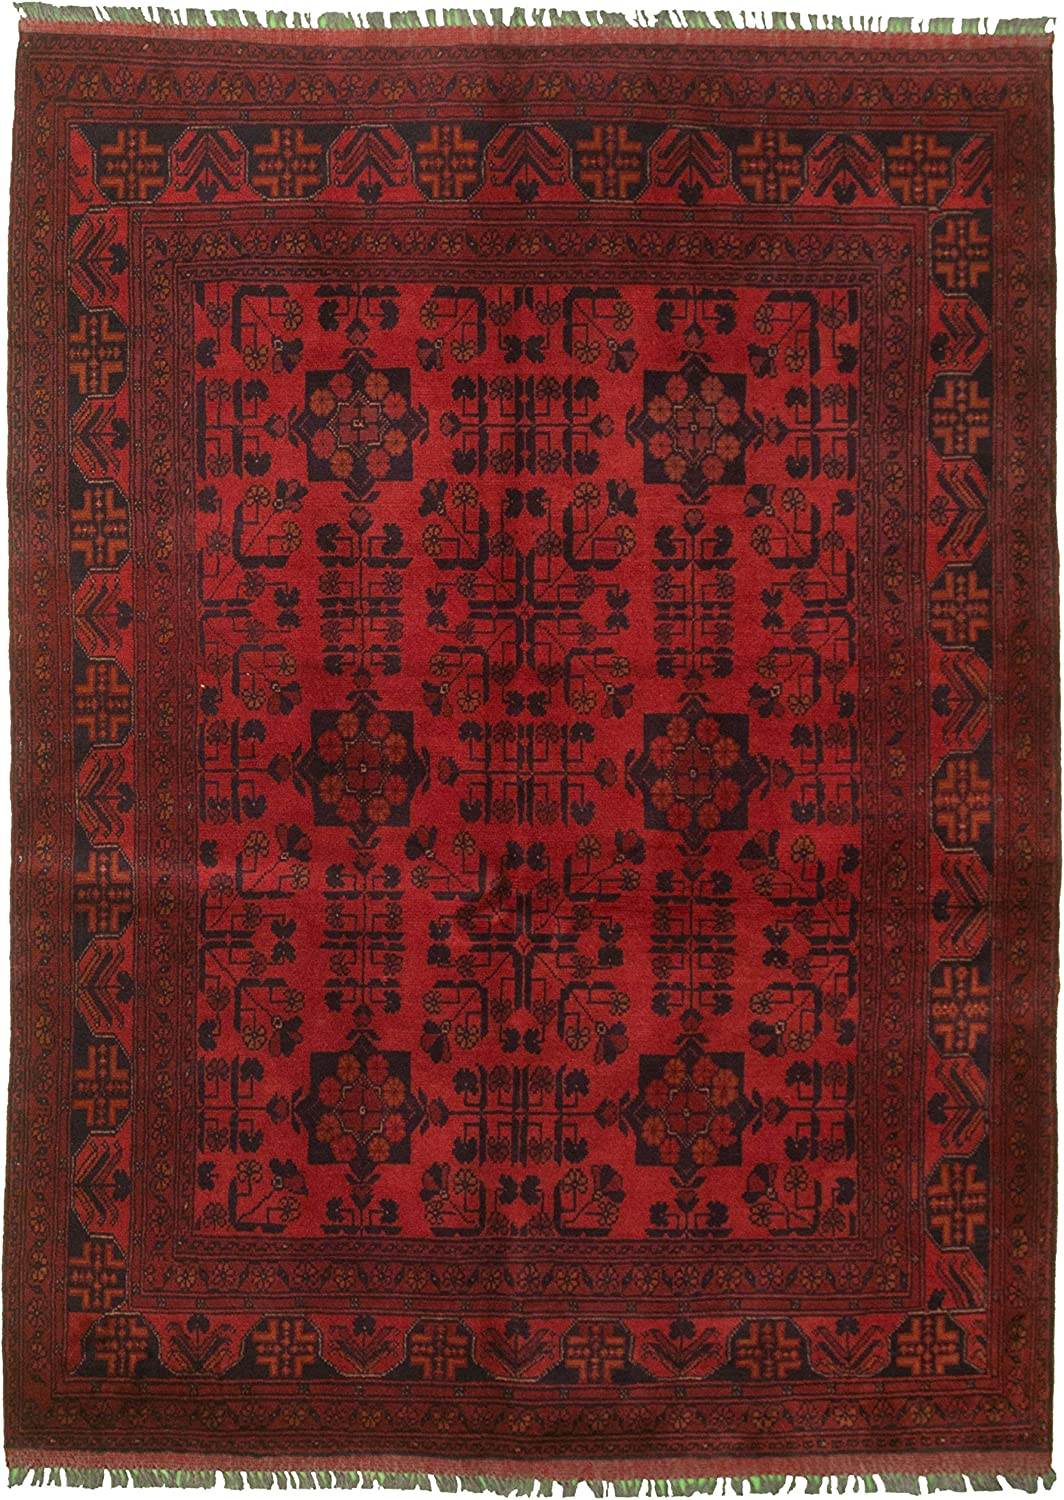 eCarpet Max 90% OFF Gallery Area Rug price for Hand-Knotted Bedroom Room Living